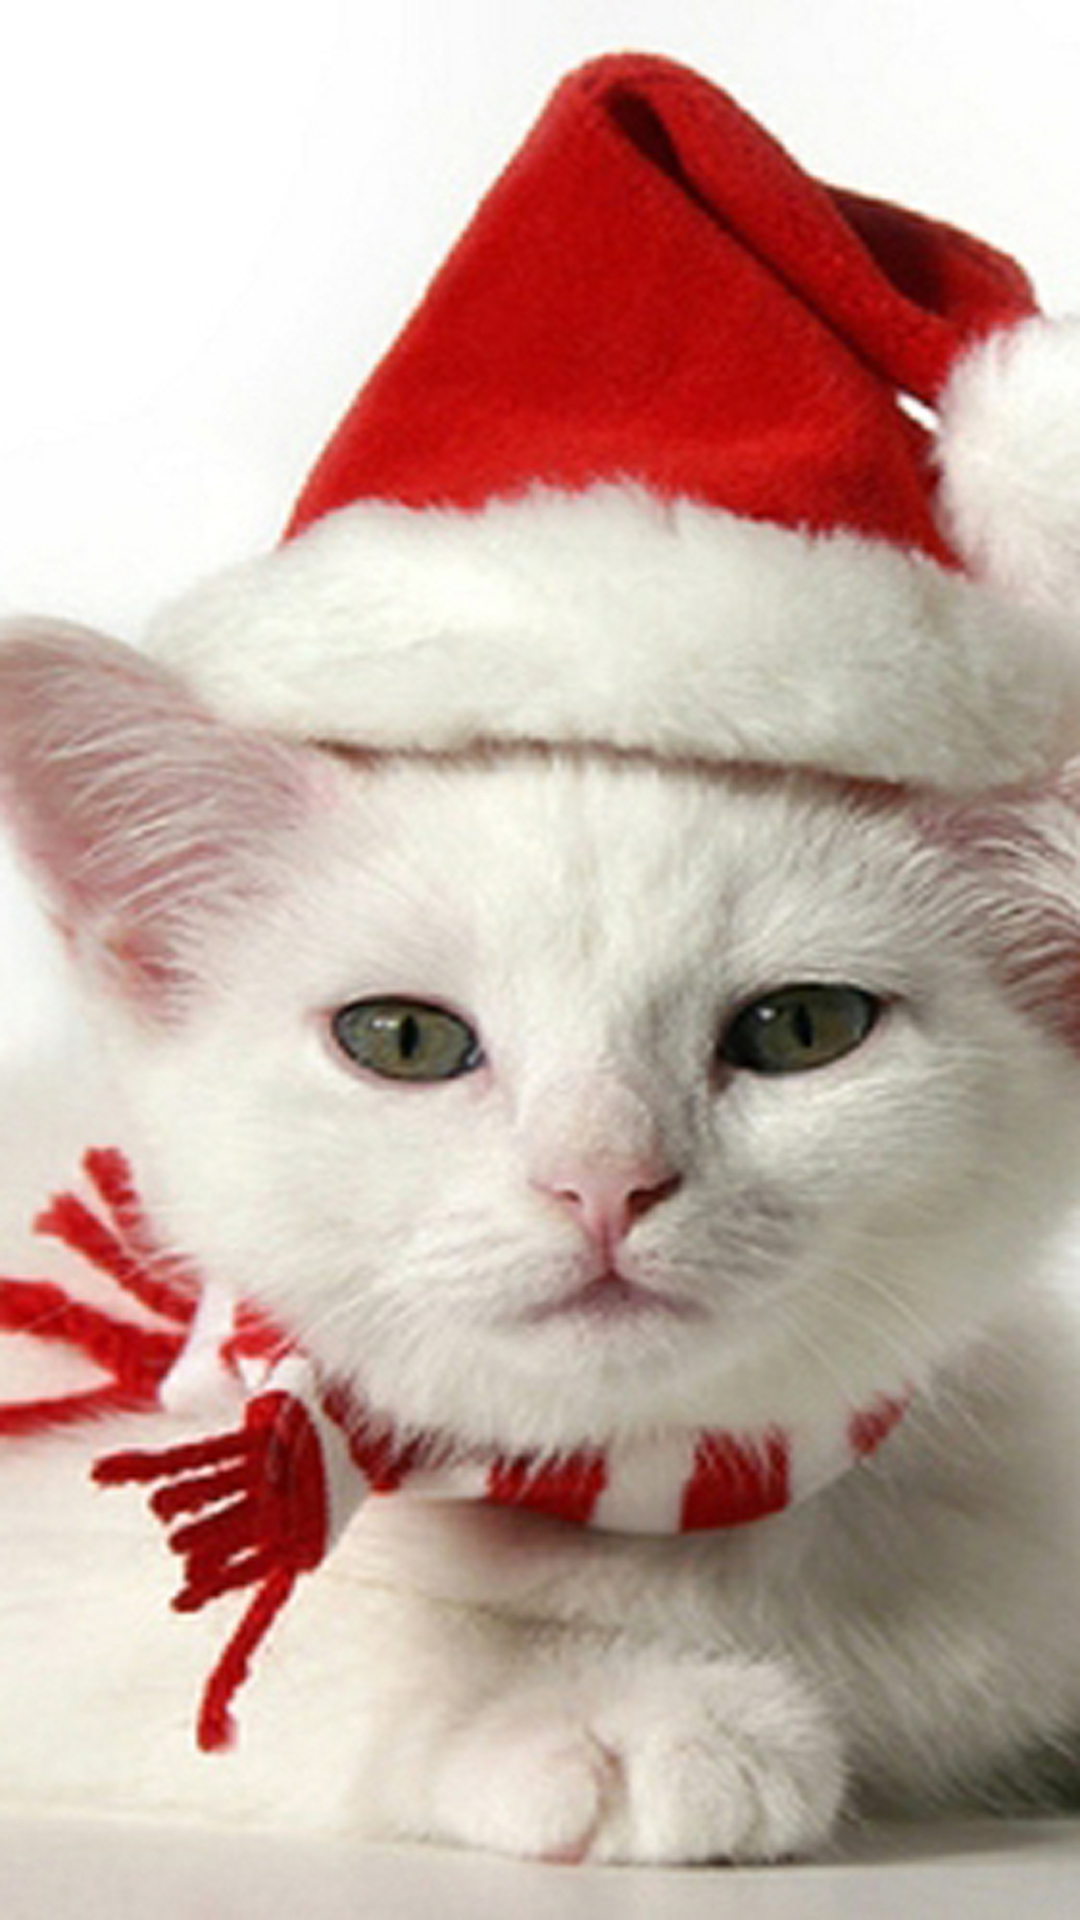 pin cutechristmaskittenhdwallpaperwallszone on pinterest